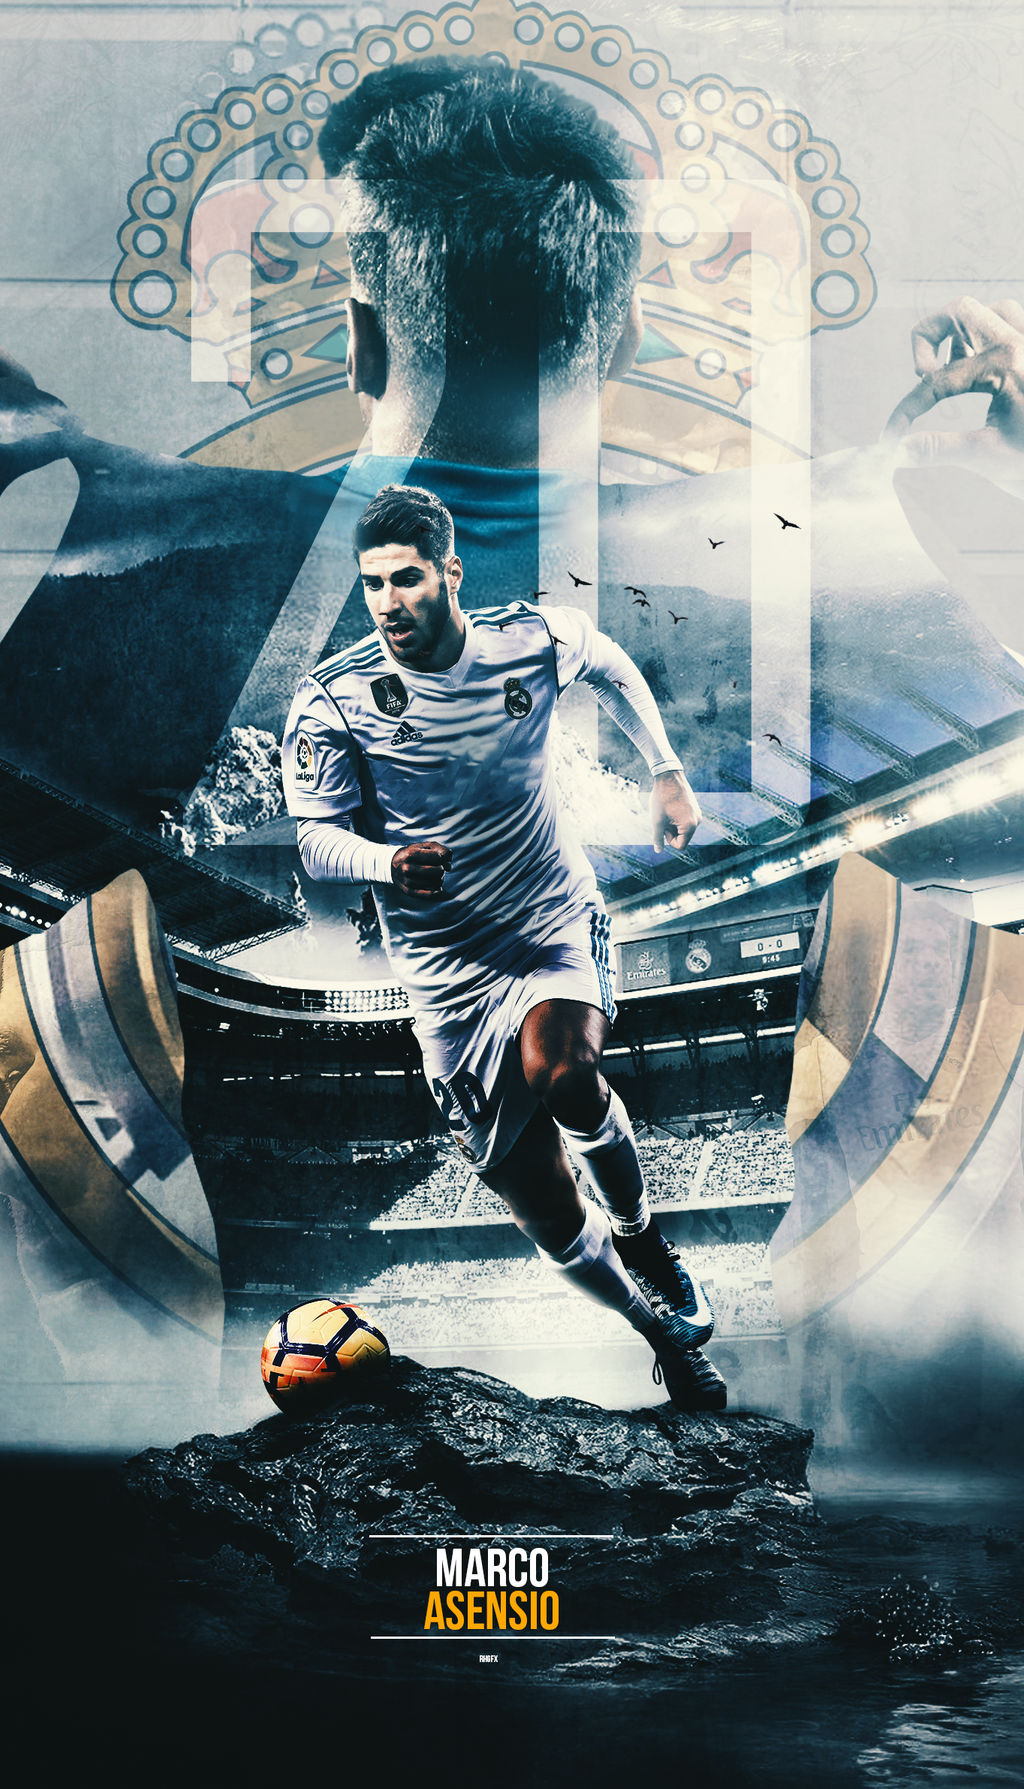 Marco Asensio Wallpaper 2018 By Rhgfx2 On Deviantart